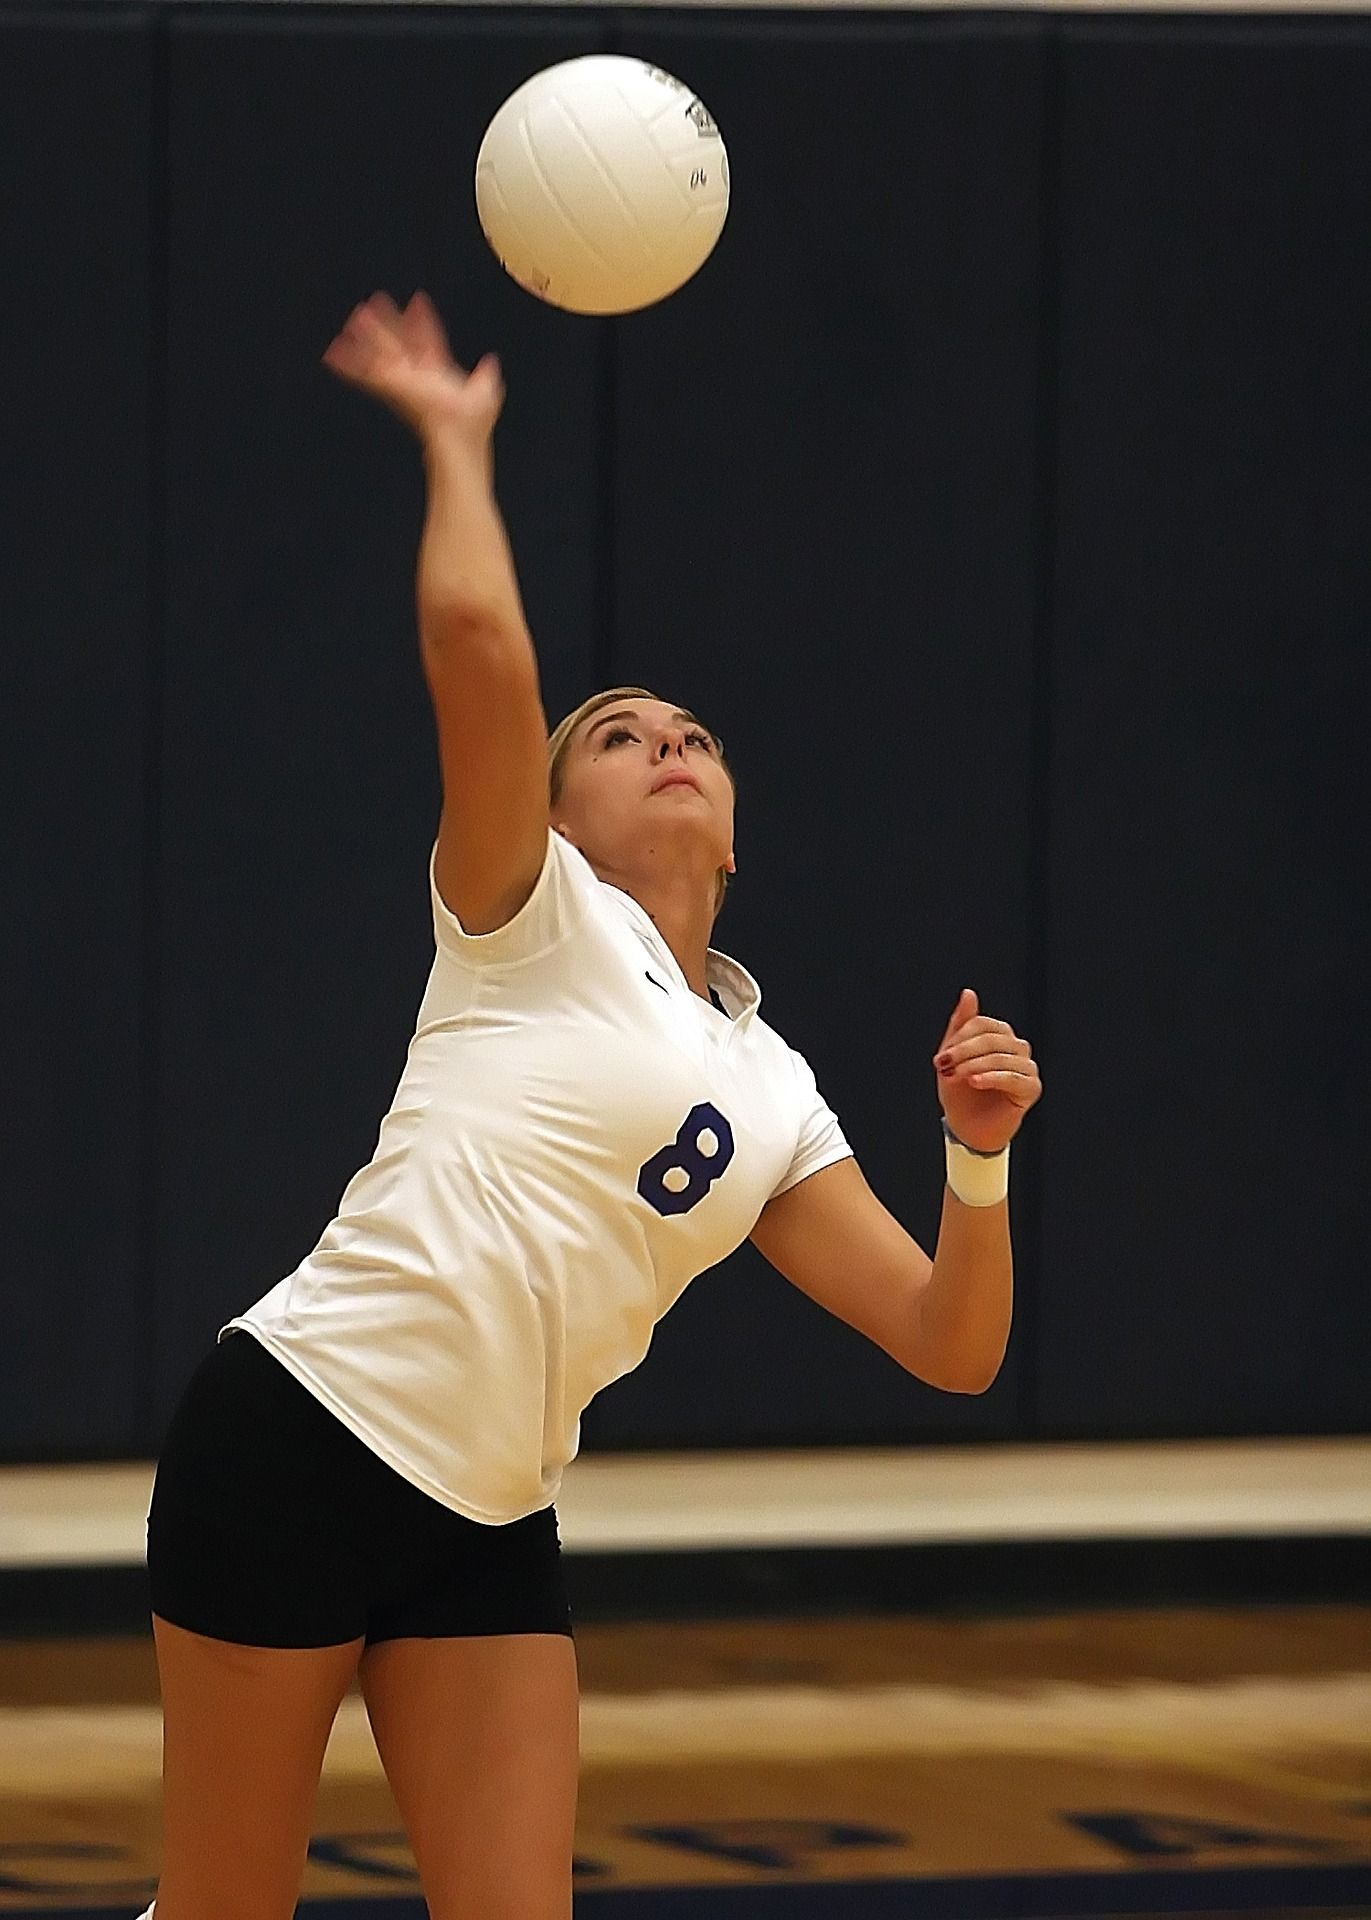 Best Shoes For Volleyball Volleyball Images Volleyball Volleyball Pictures